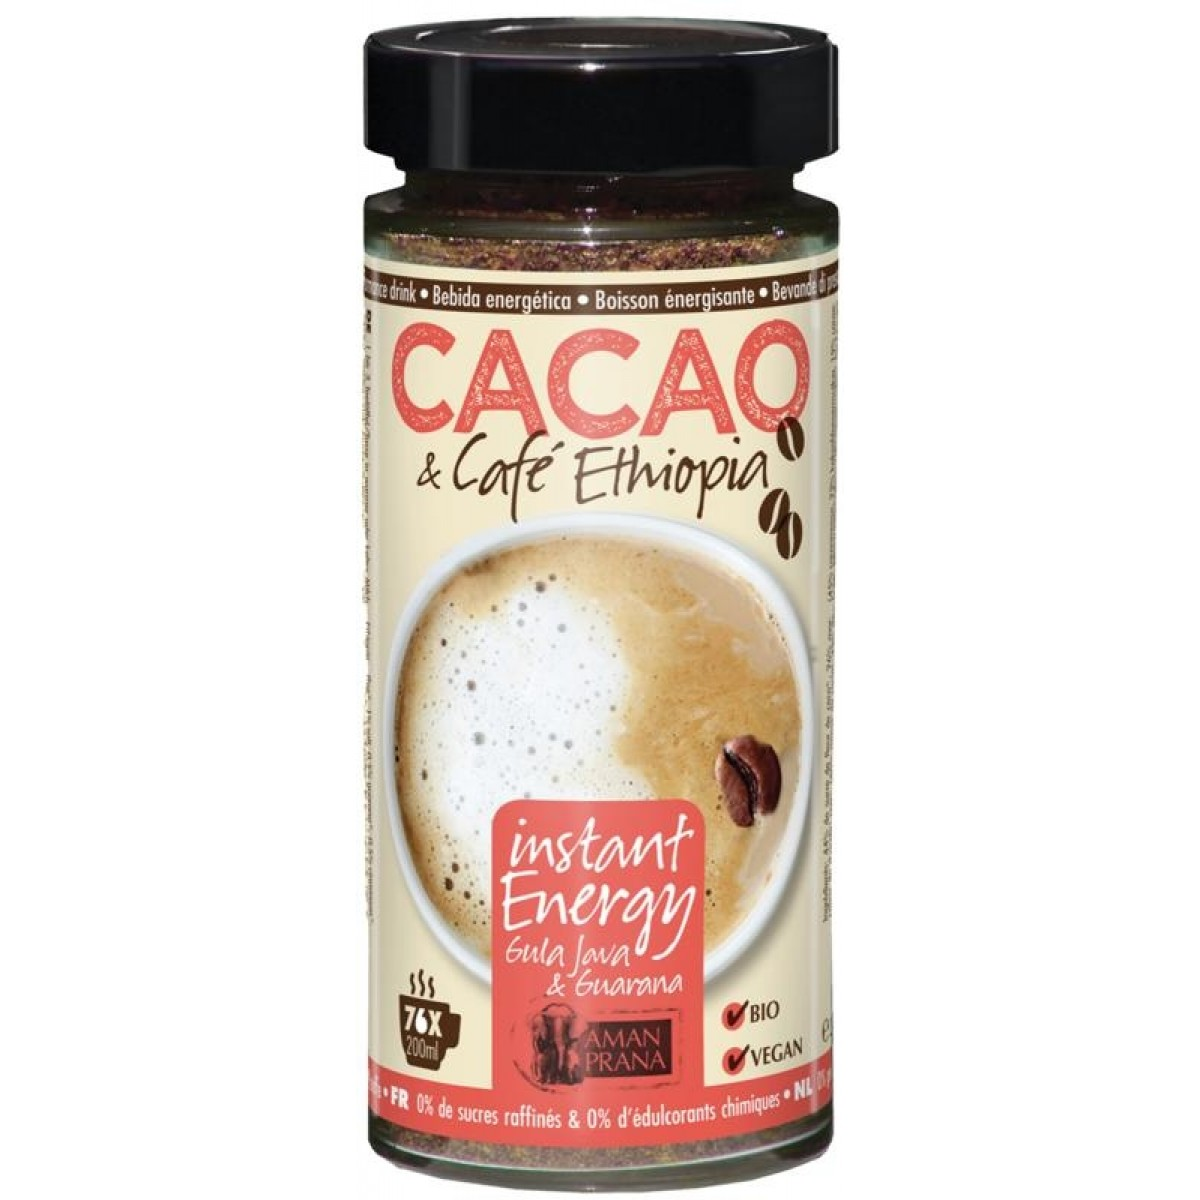 Instant Energy Cacao & Cafe Ethiopia